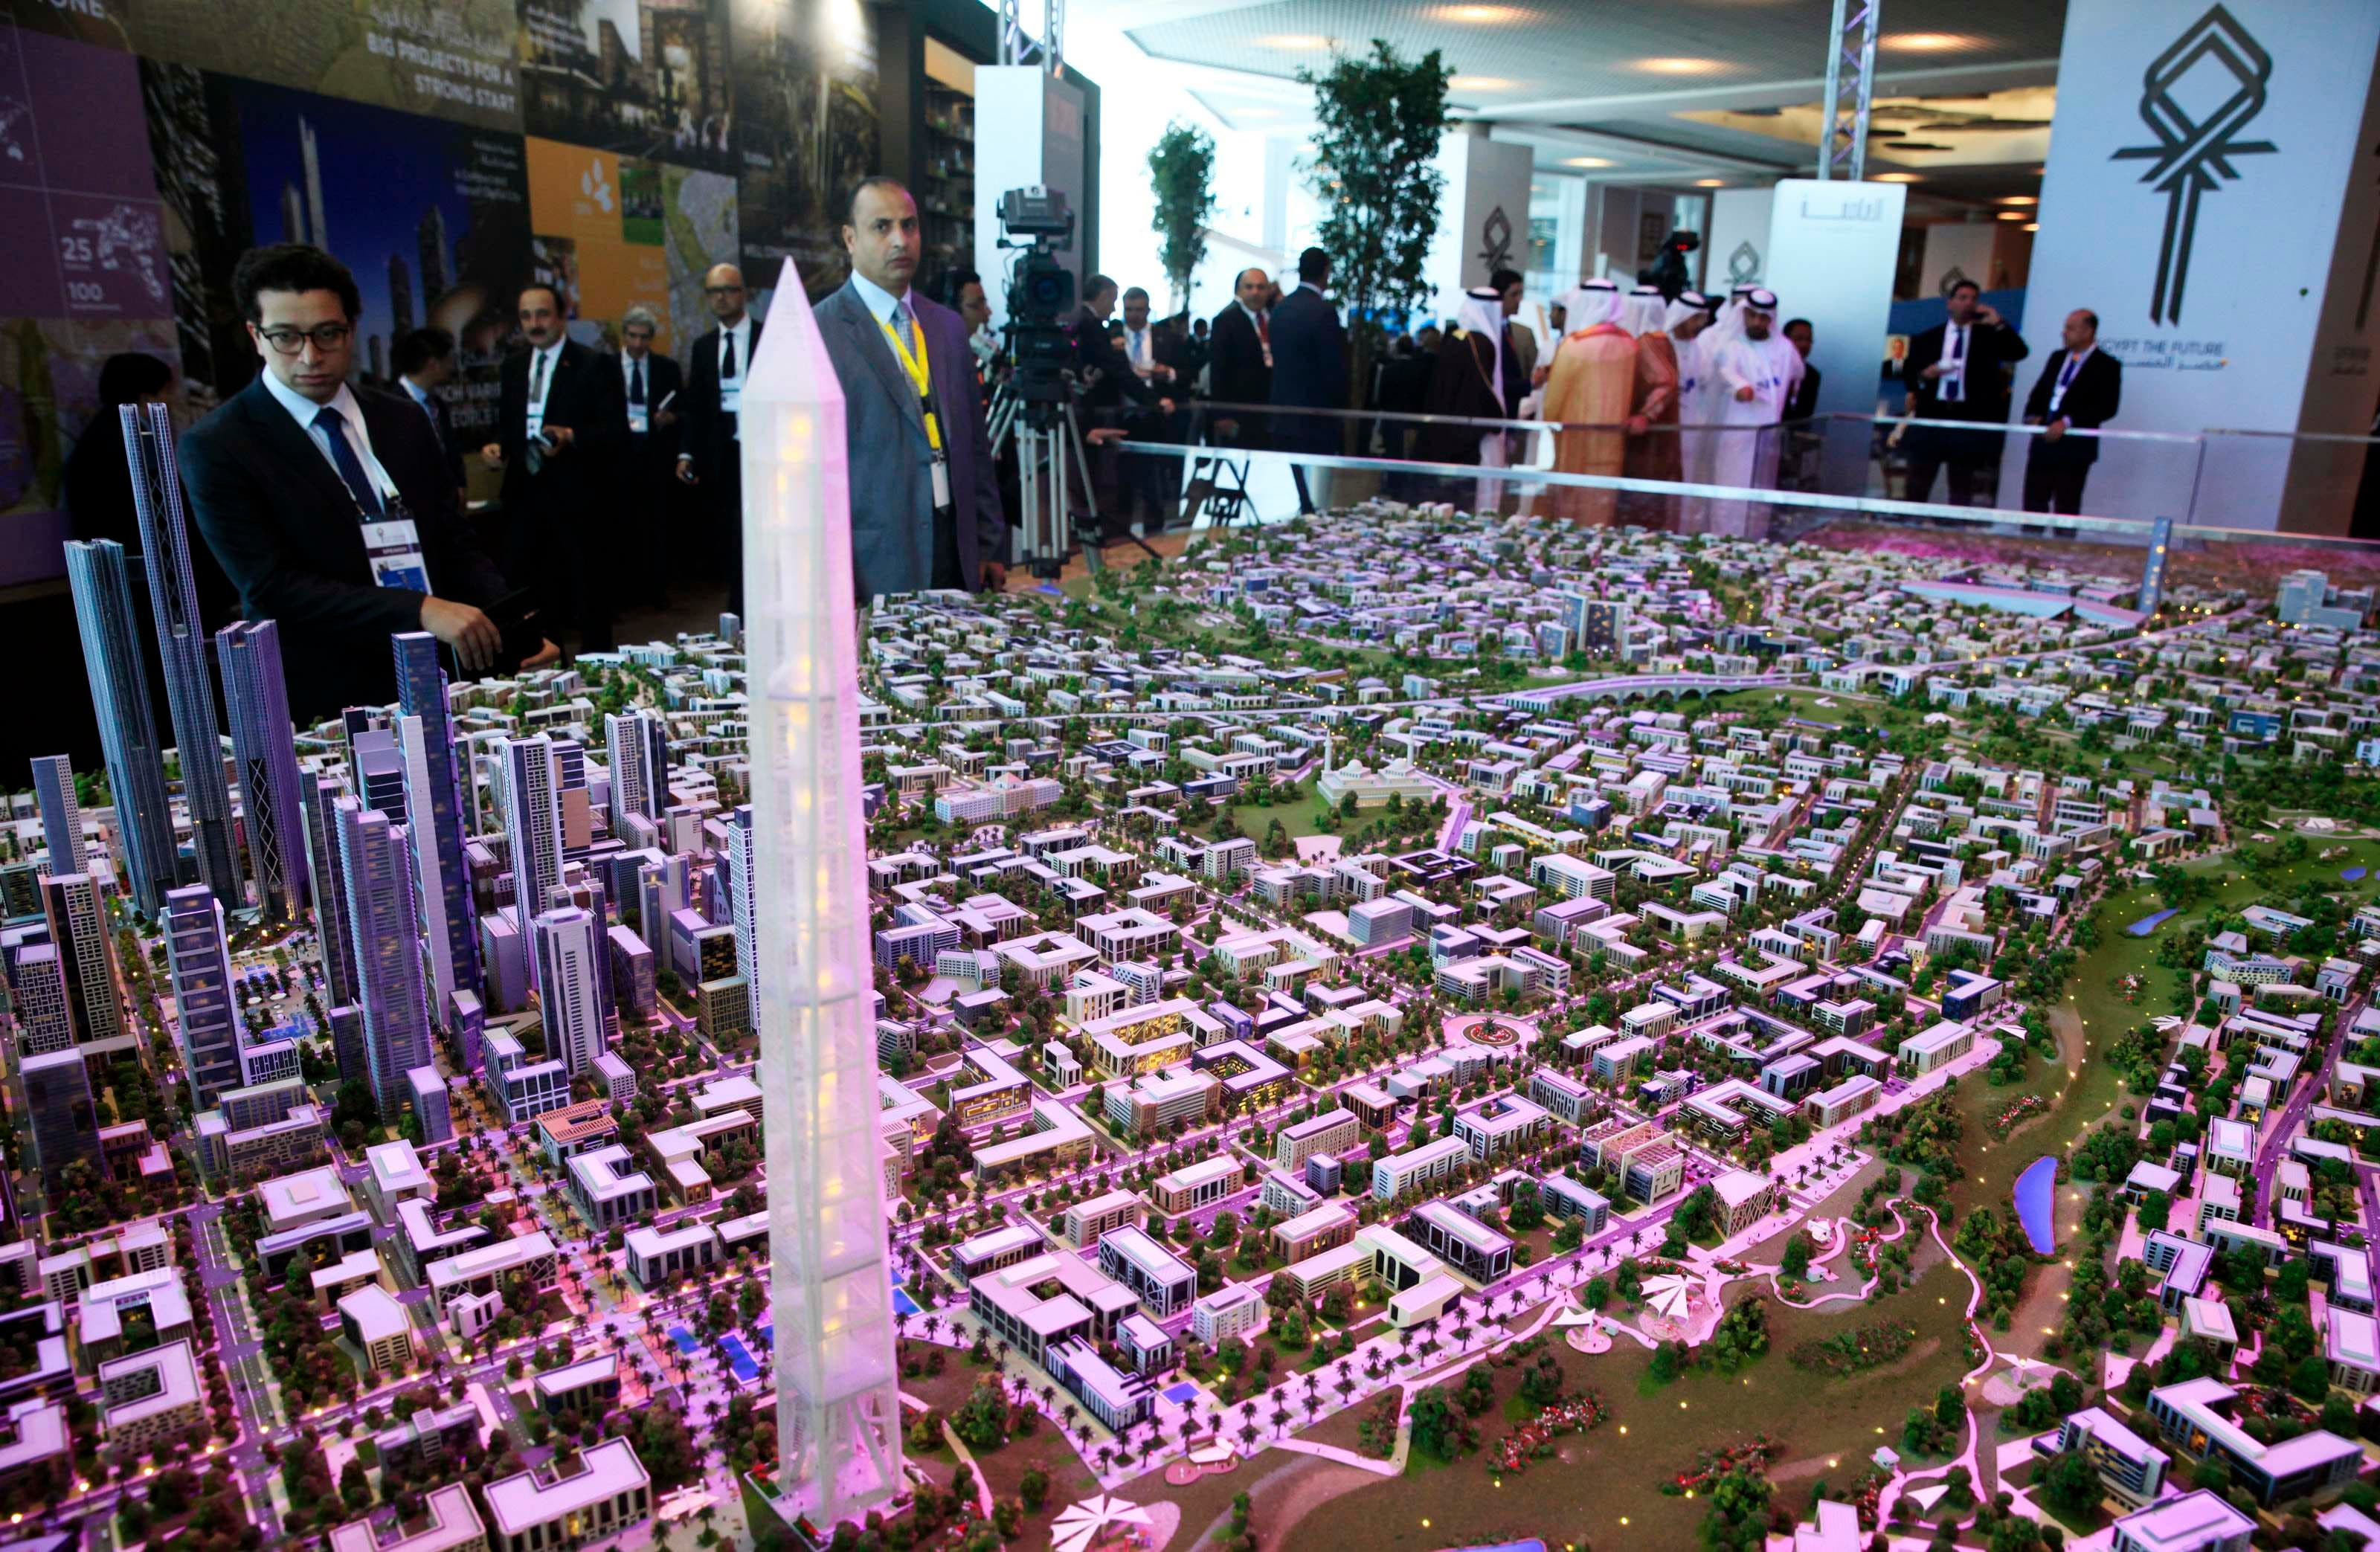 'Egypt The Future' conference